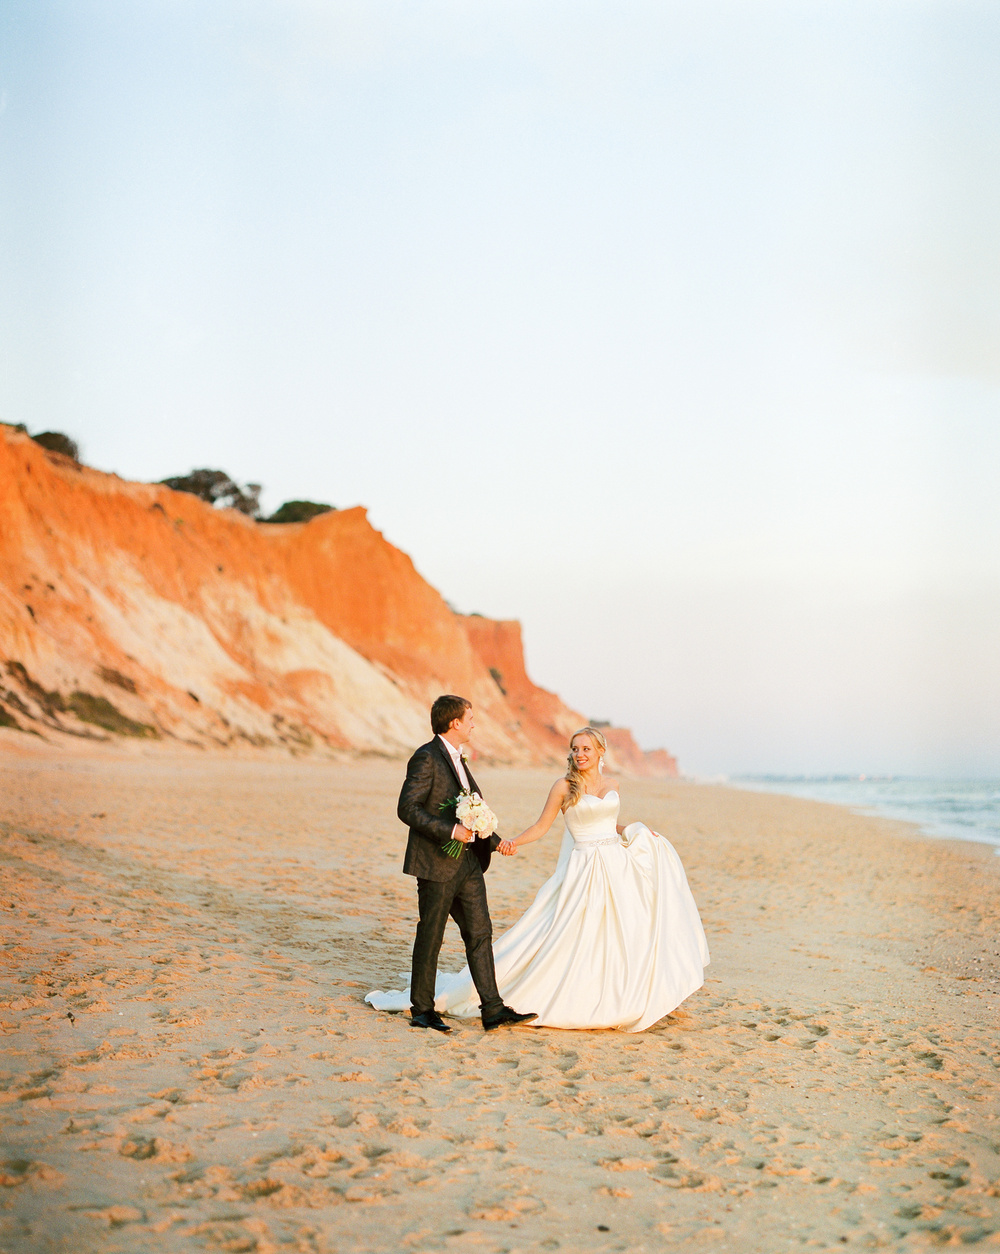 Bride and groom walking on the beach on their wedding day